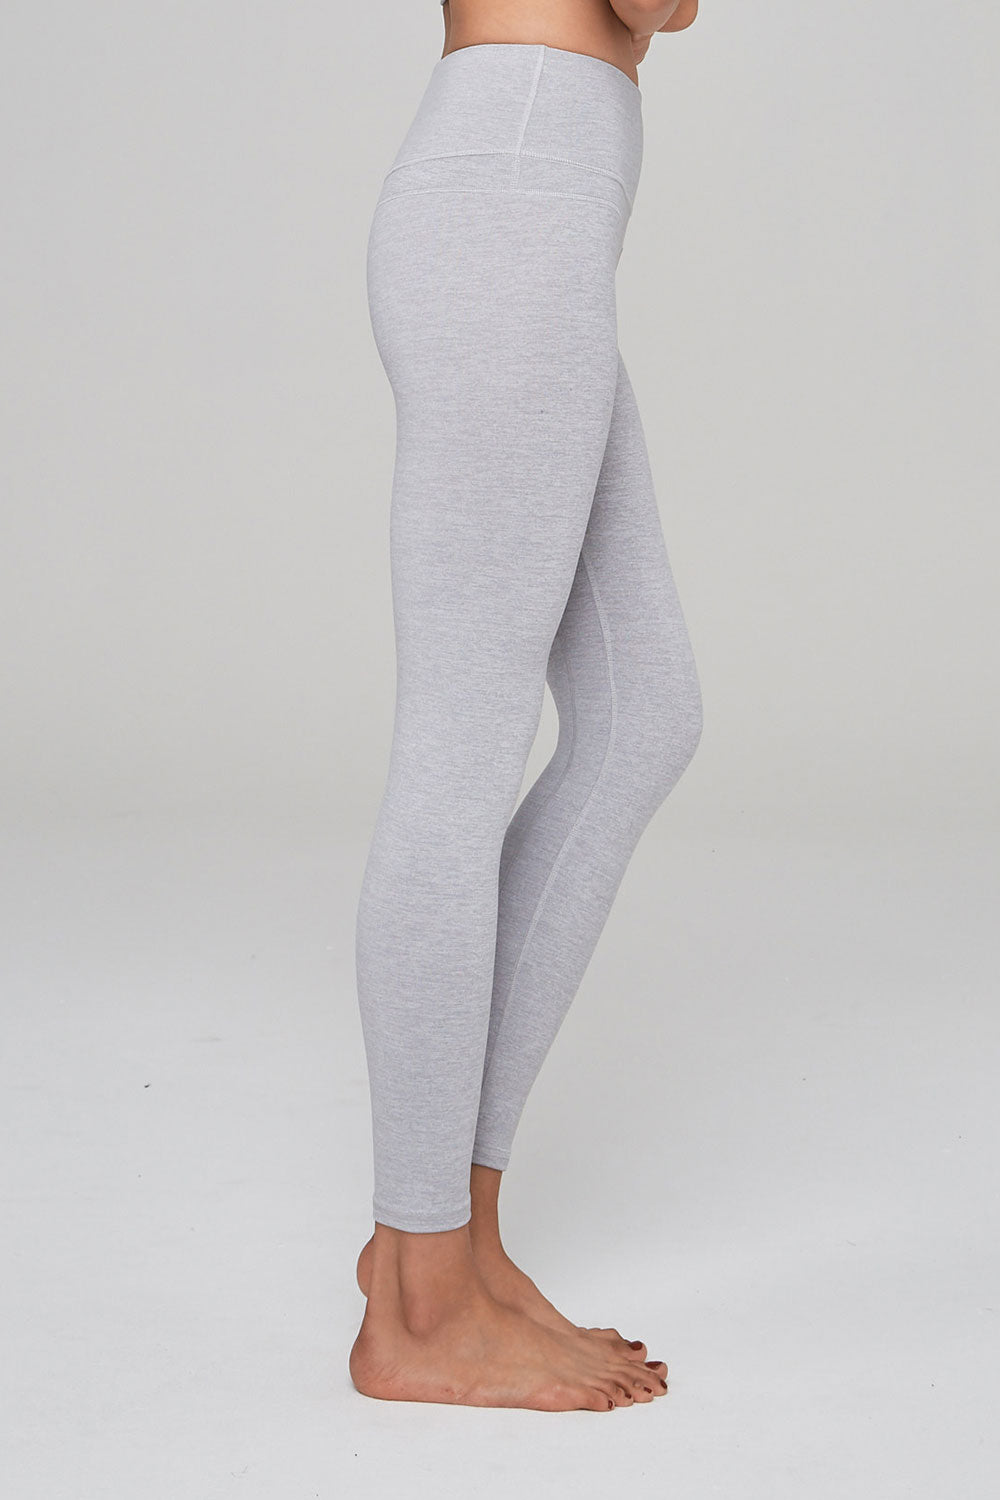 Varley Camdon Cropped Tight - Heather Ash - Sculptique